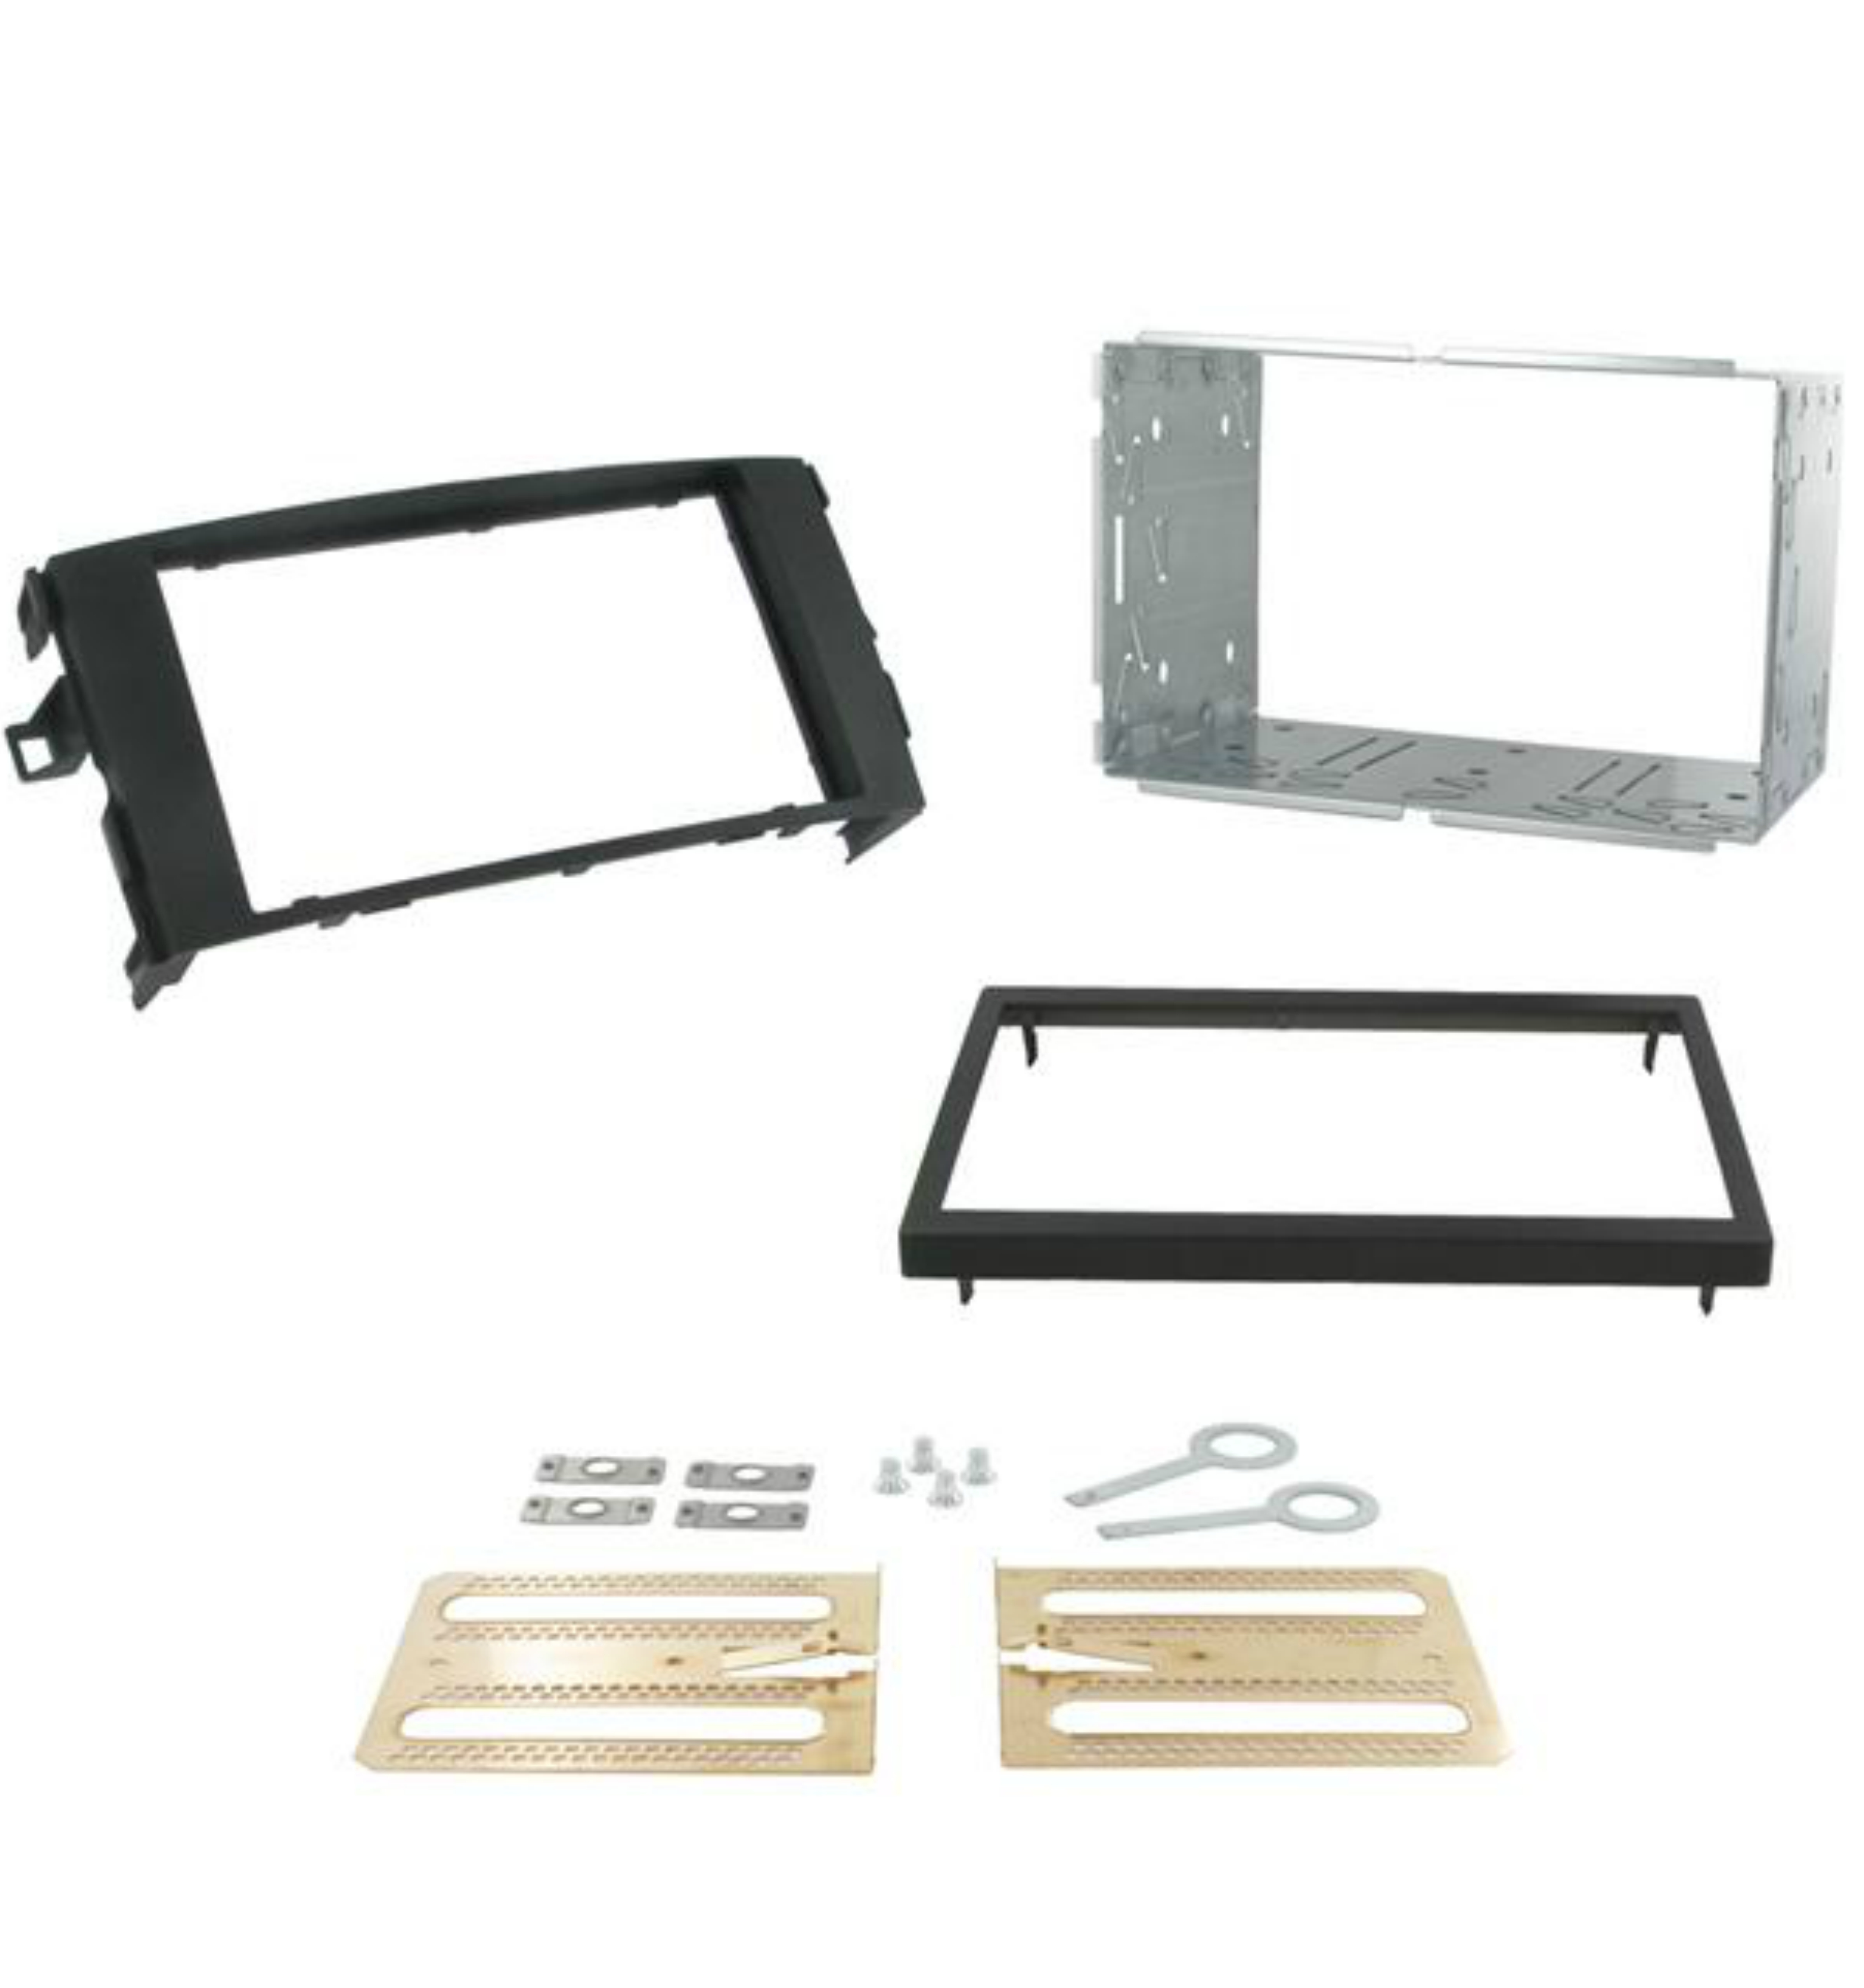 C2 23TY06 Car Stereo Double Din Fascia Plate Adaptor Toyota Auris/Corolla 2007>